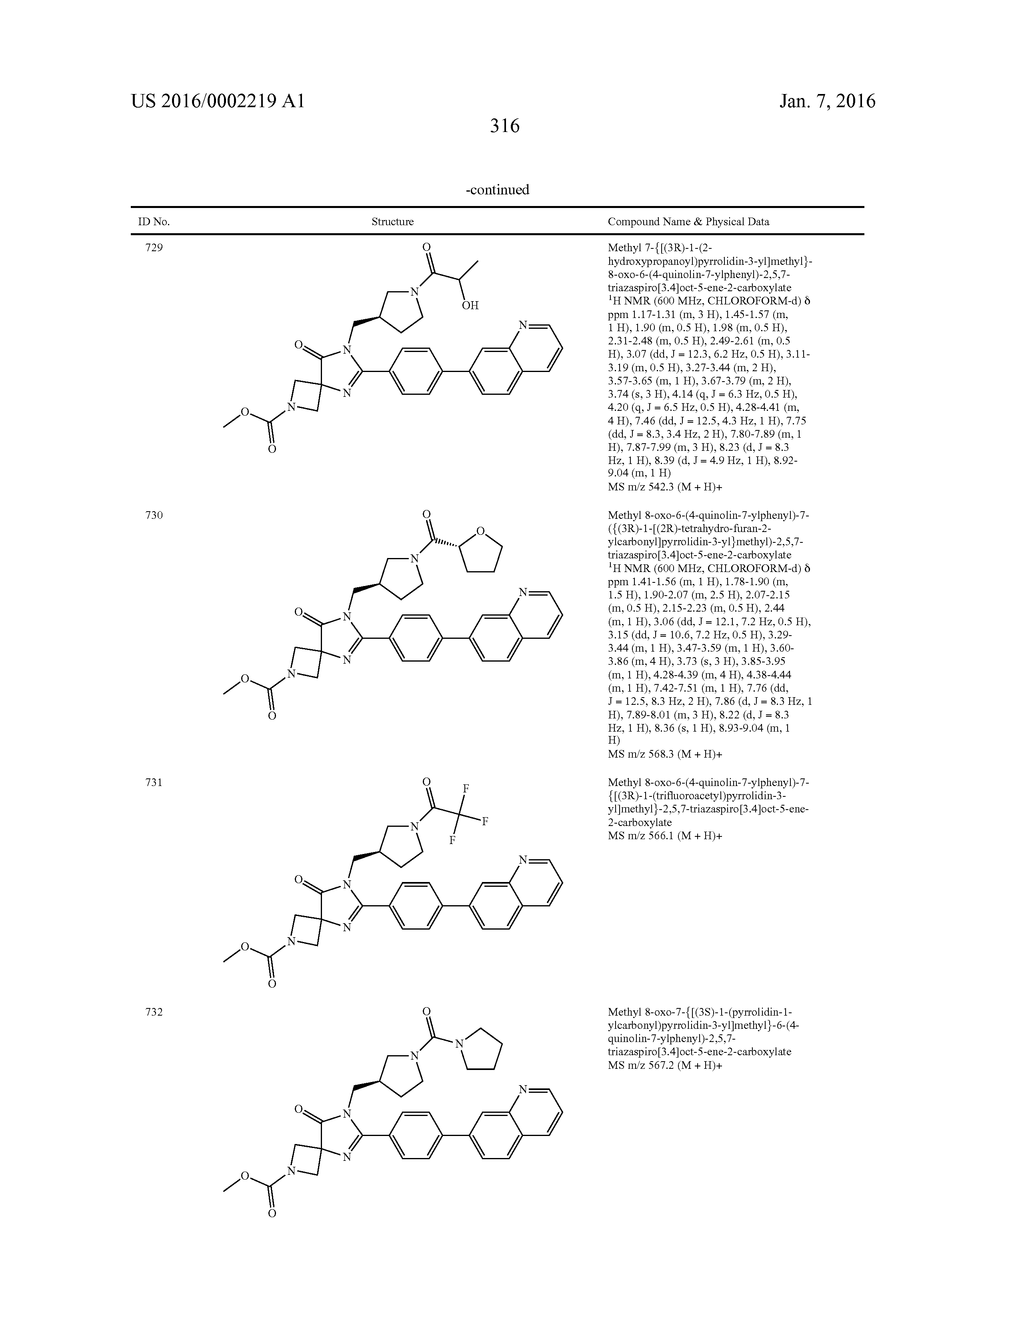 IMIDAZOLIN-5-ONE DERIVATIVE USEFUL AS FASN INHIBITORS FOR THE TREATMENT OF     CANCER - diagram, schematic, and image 317